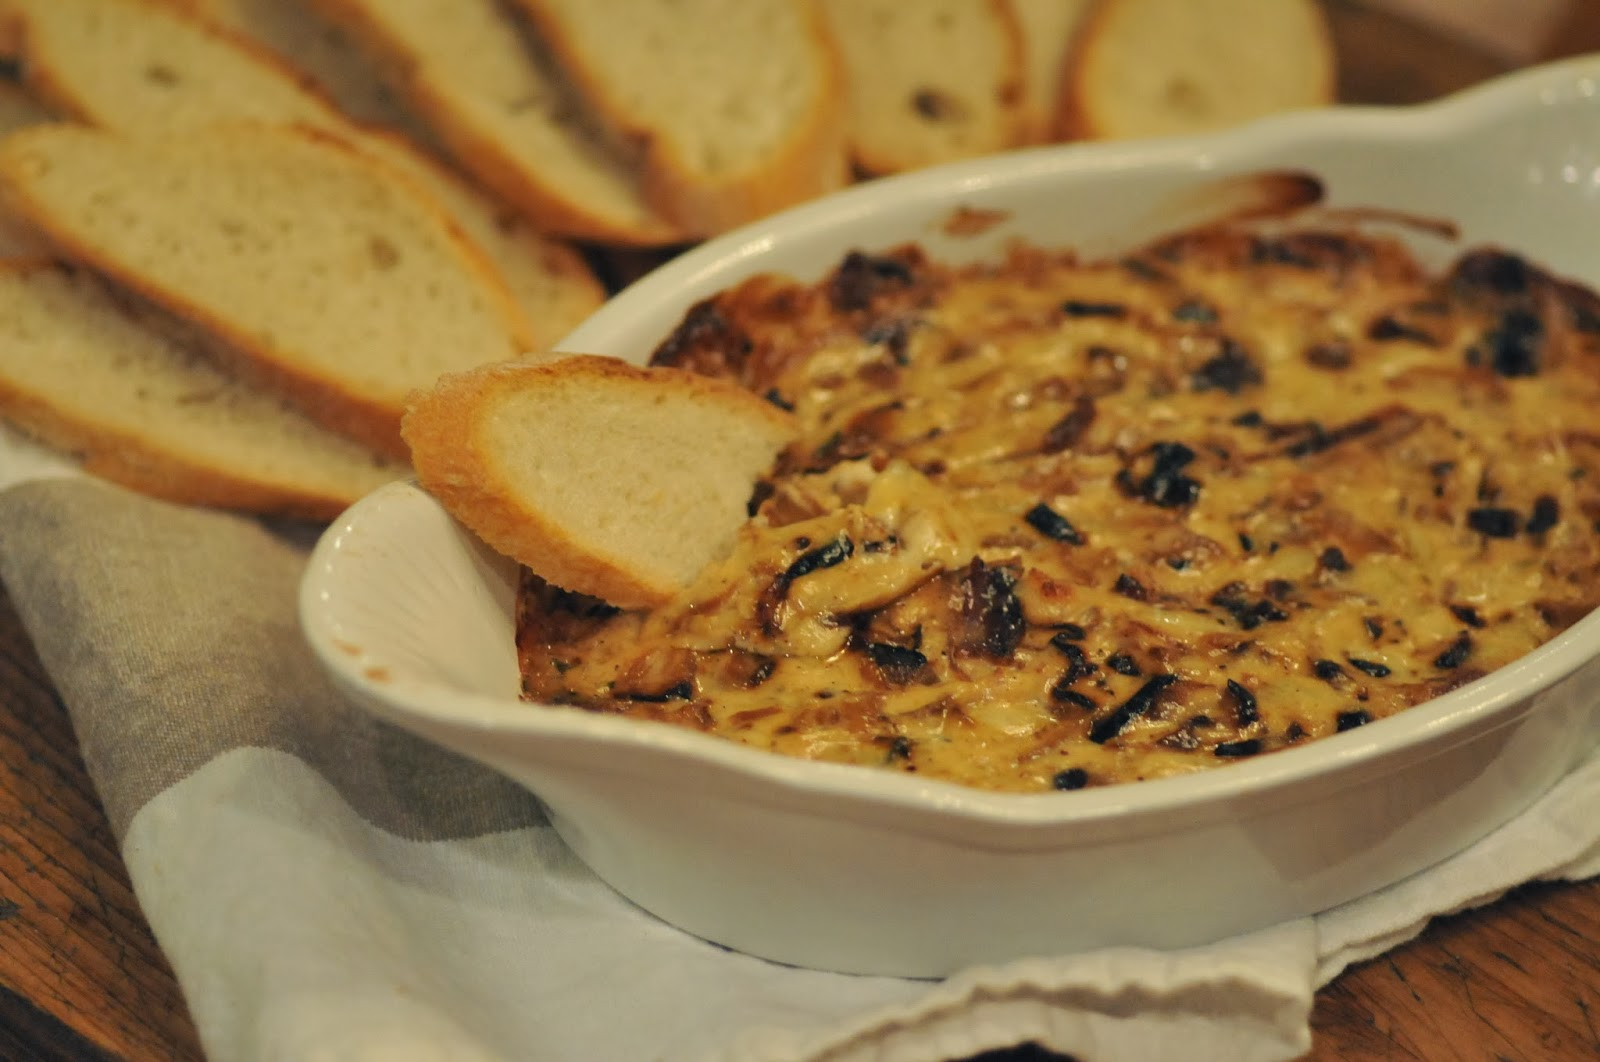 ... caramelized onion tart hot caramelized onion dip with bacon and